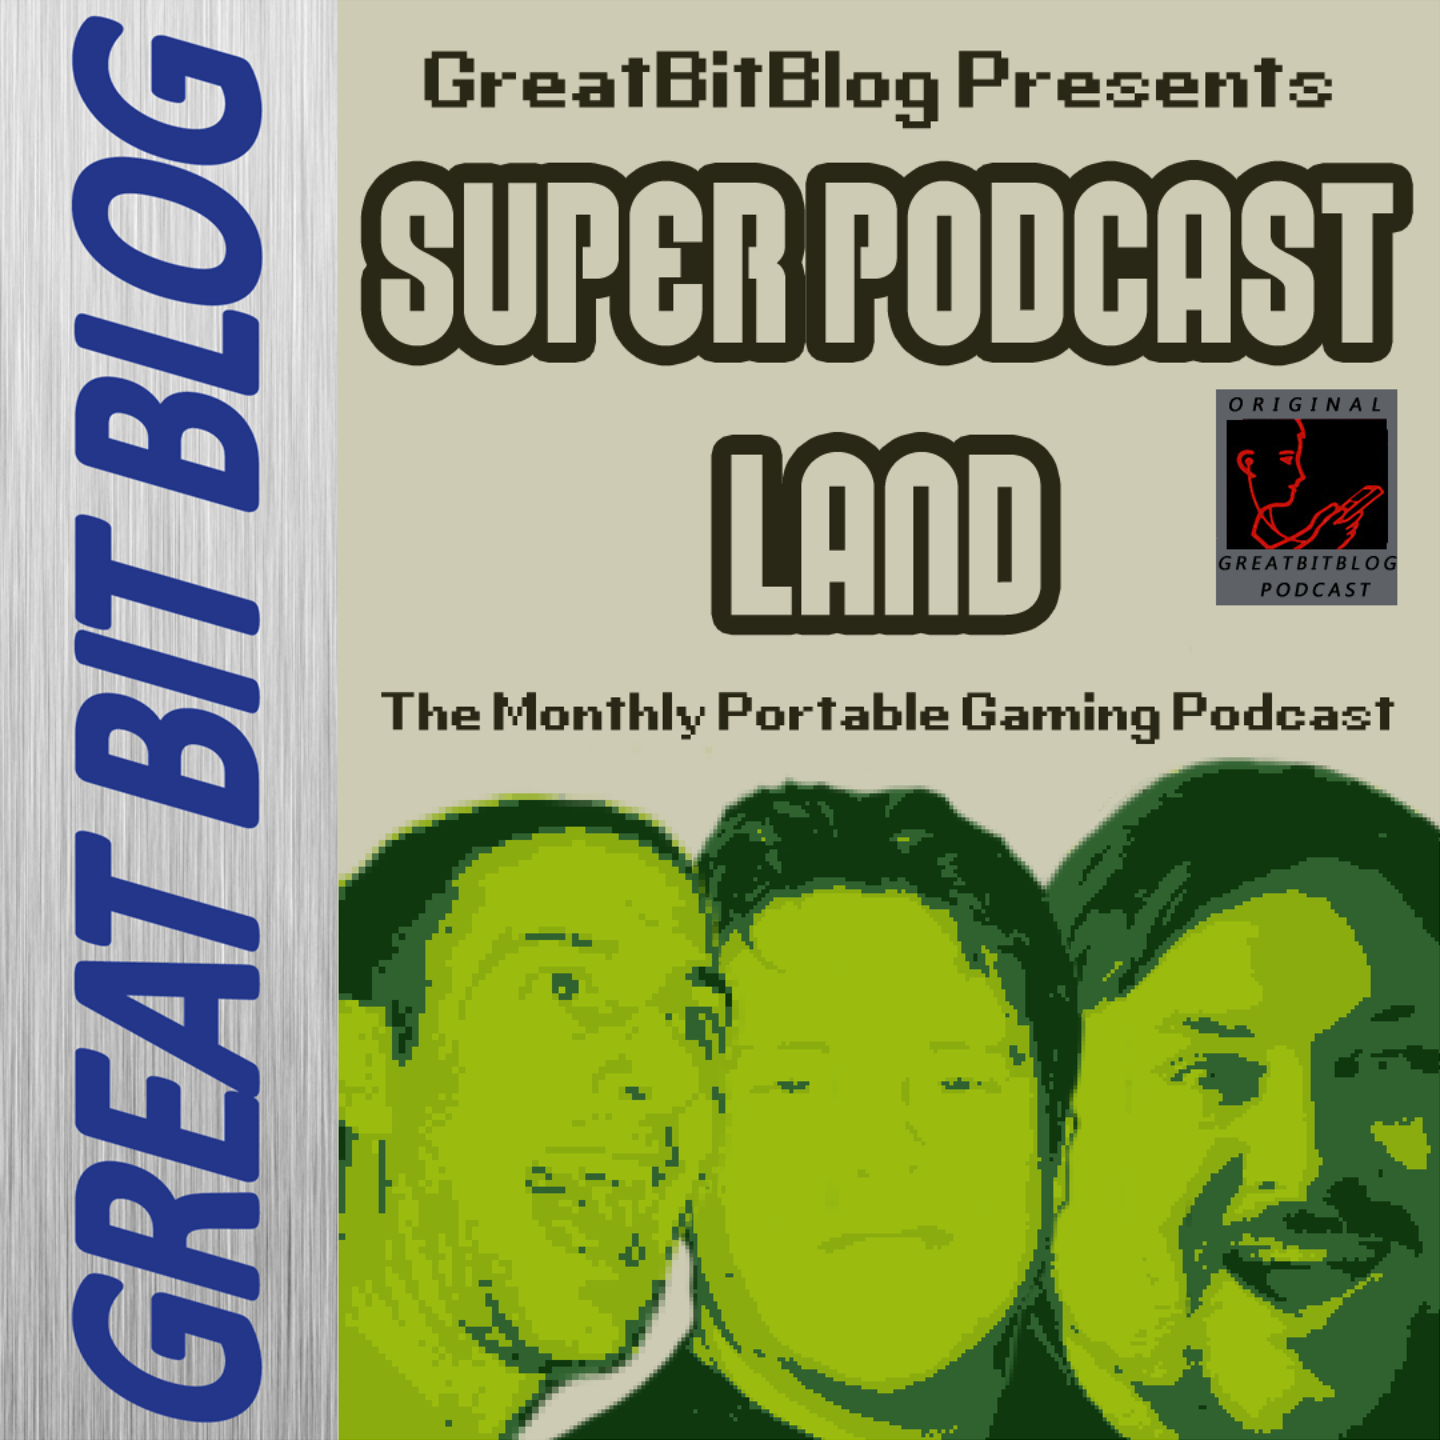 GreatBitBlog » Podcast Series » Super Podcast Land